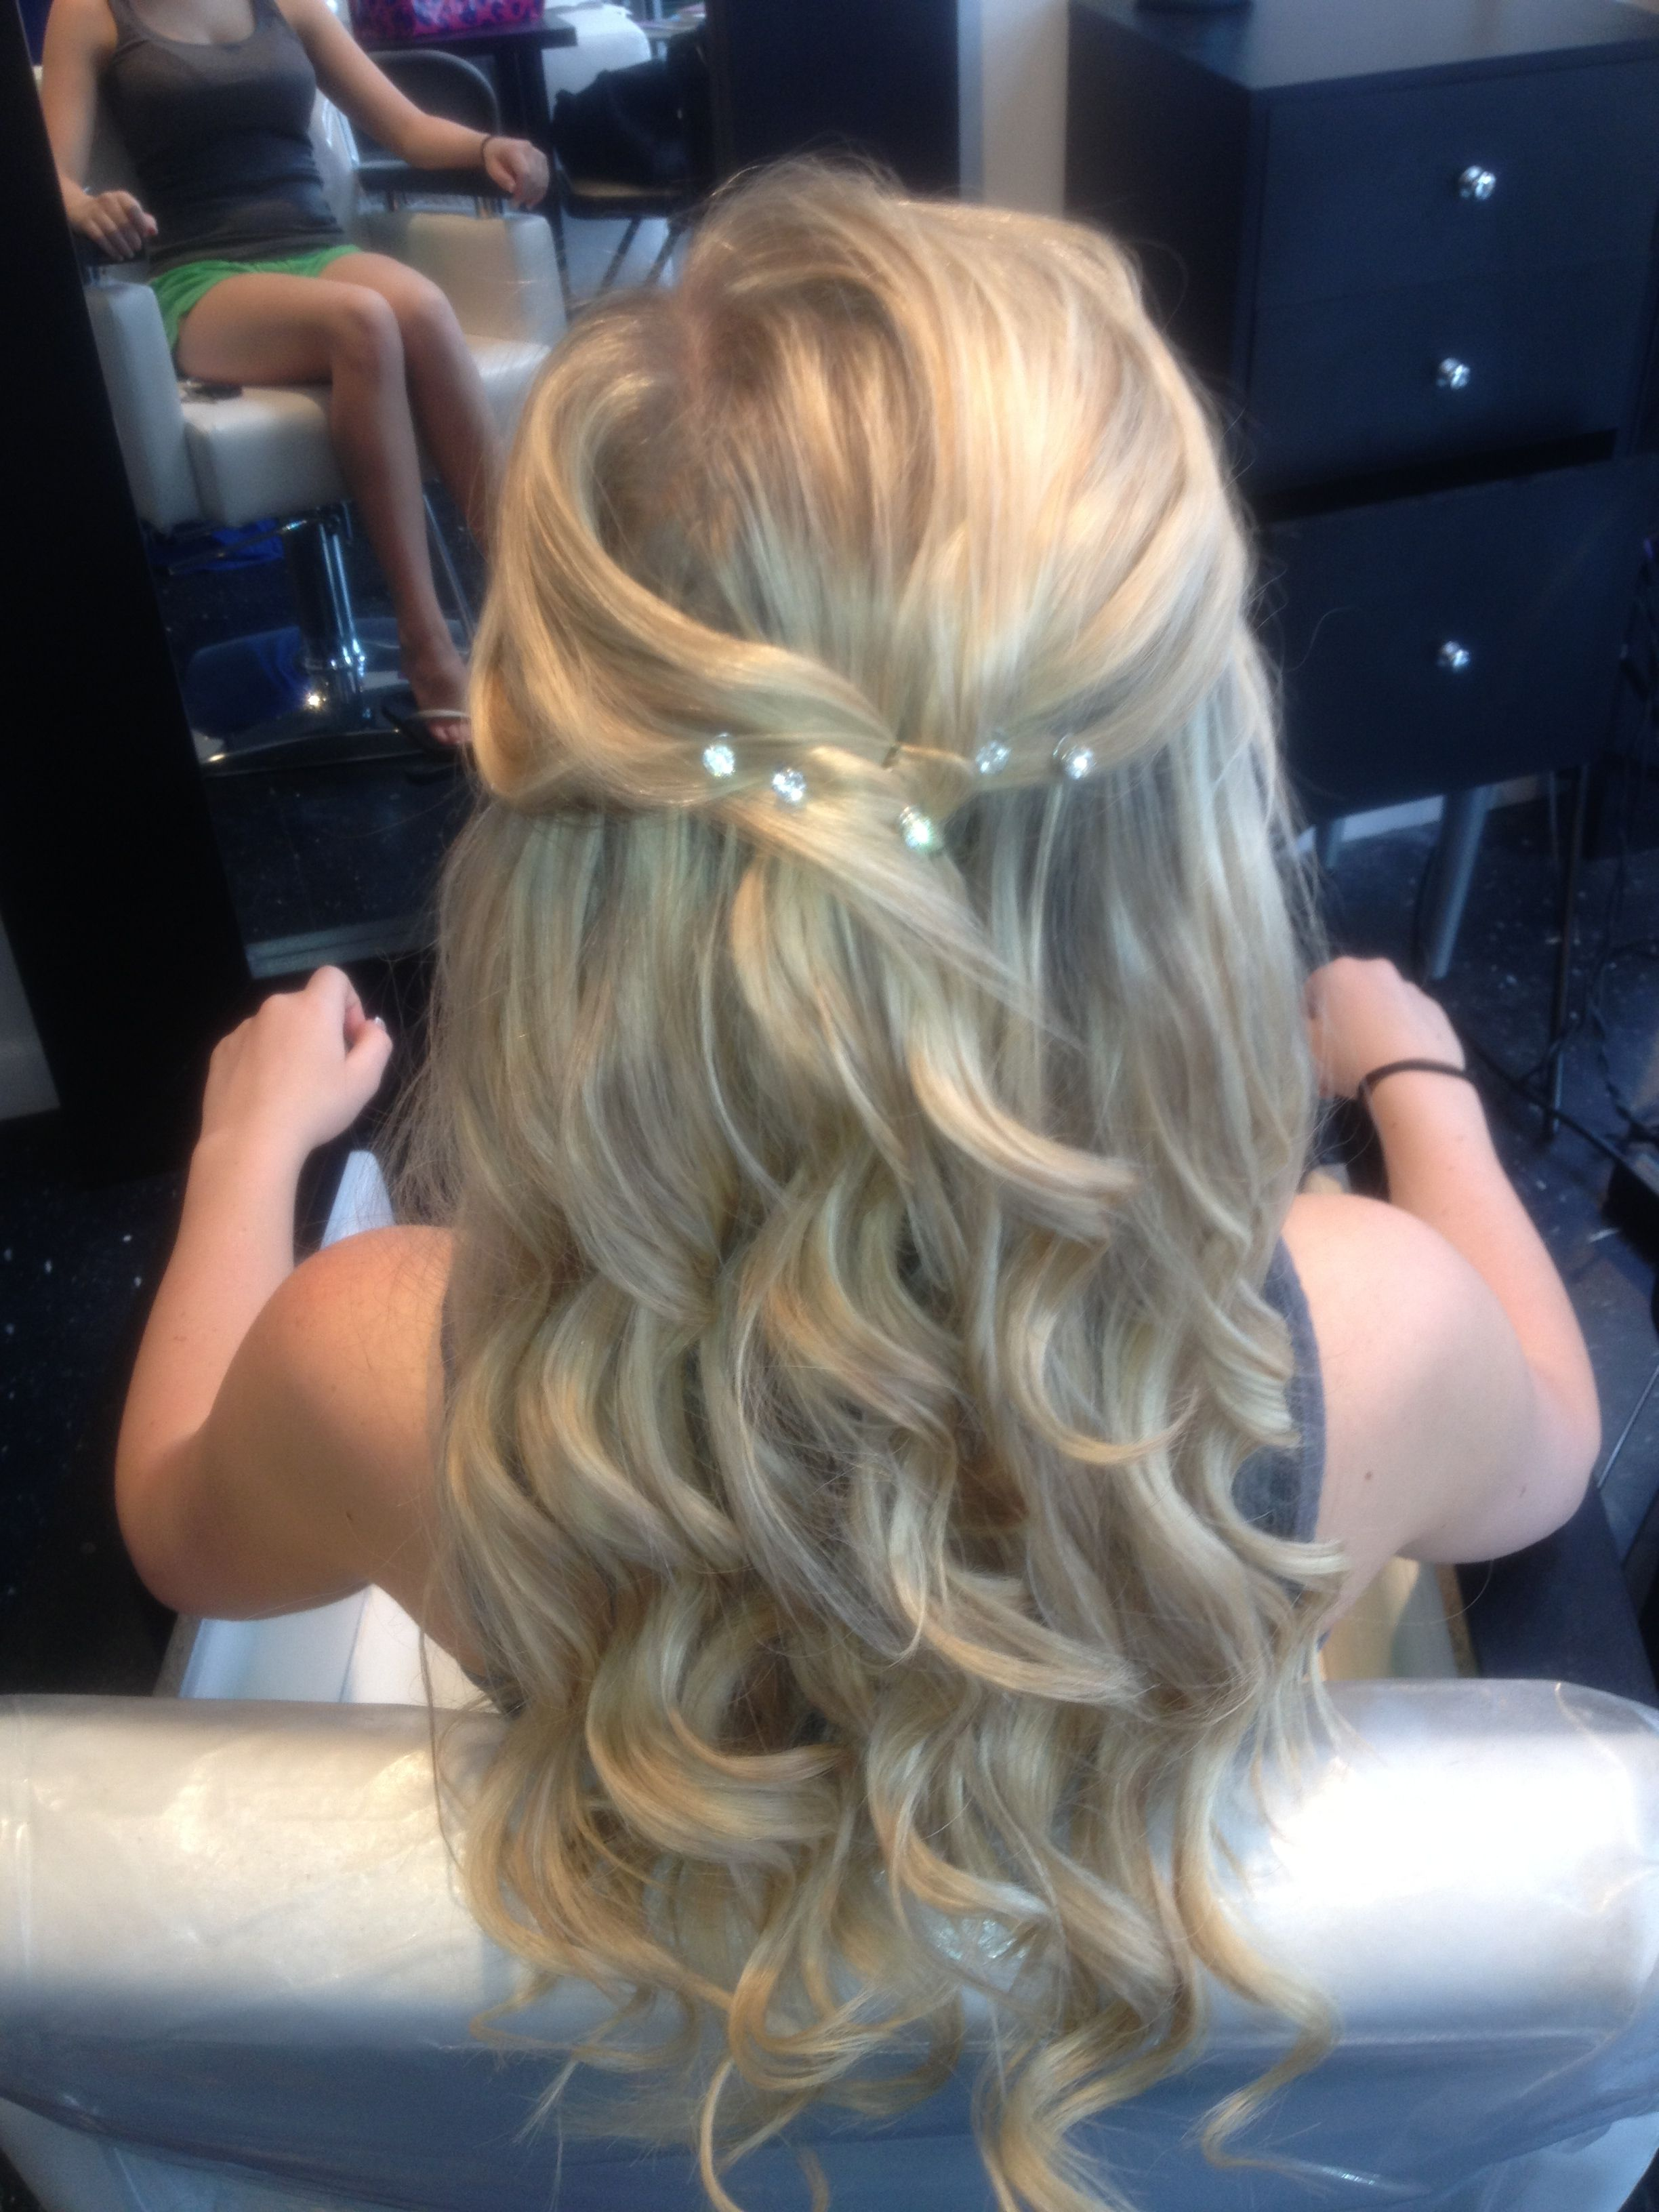 My Half Up Half Down Curled Prom Hair With Jewels Prom Hair